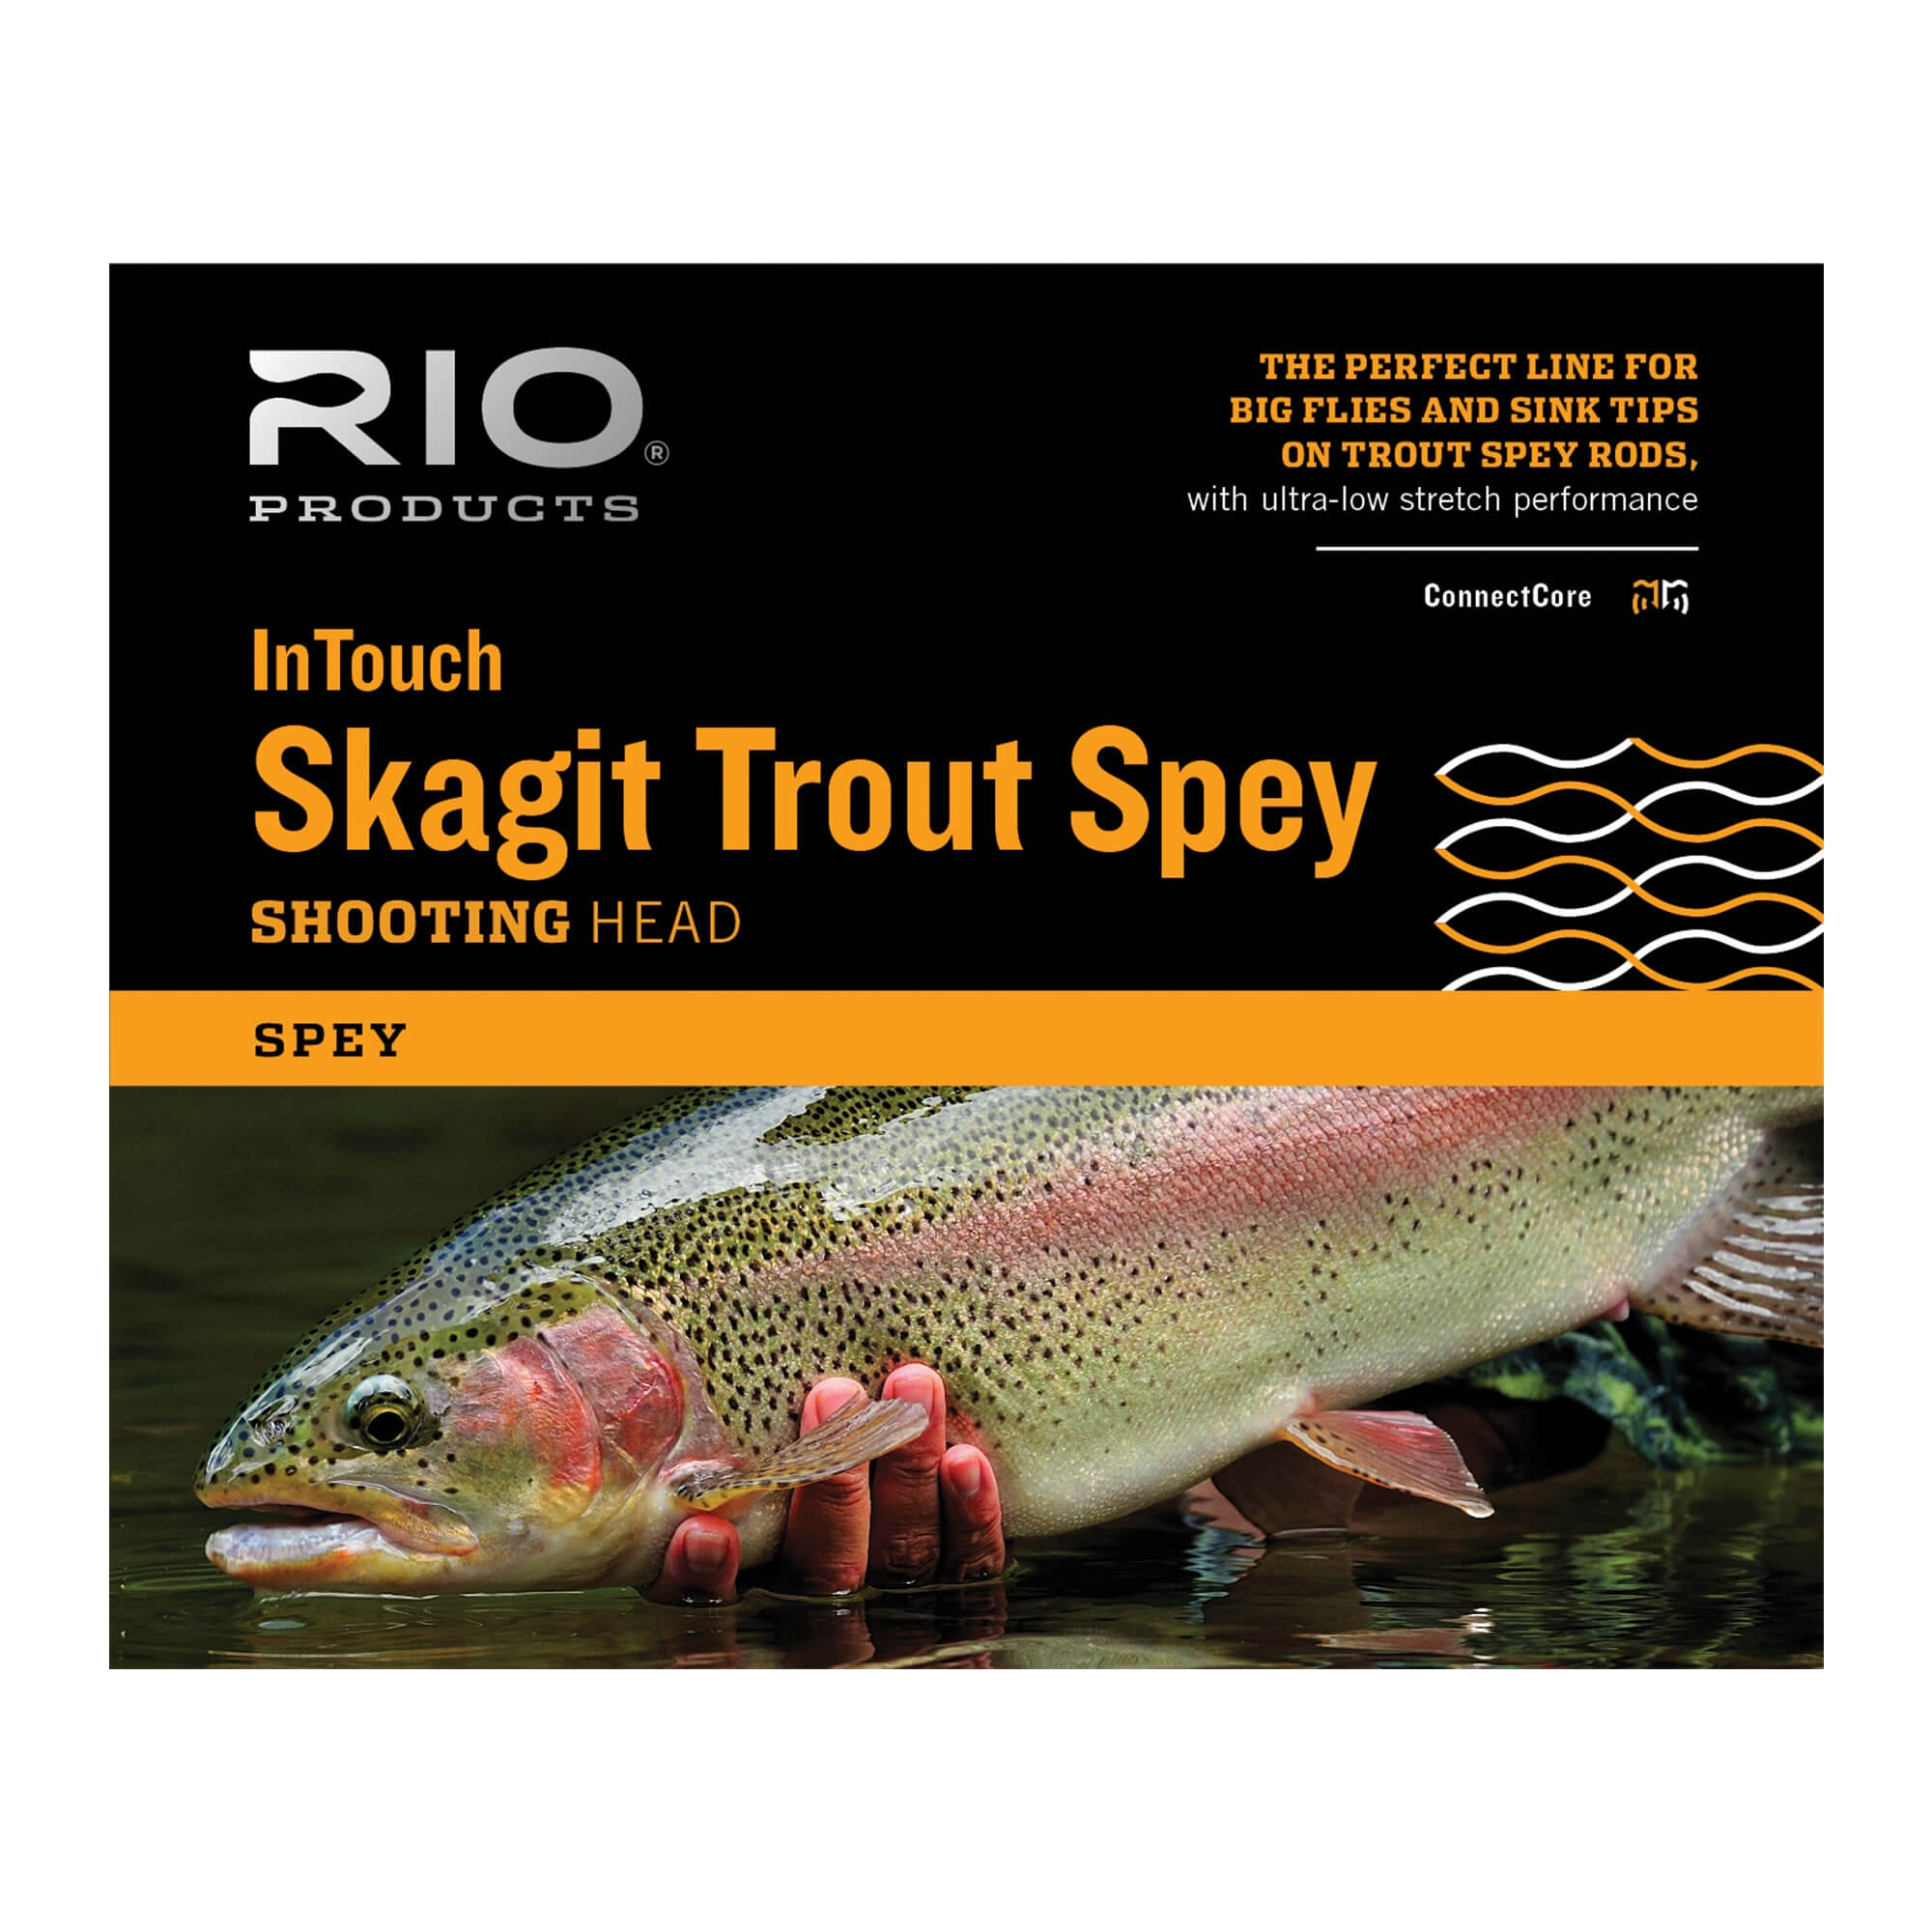 INTOUCH SKAGIT TROUT SPEY SHOOTING HEAD